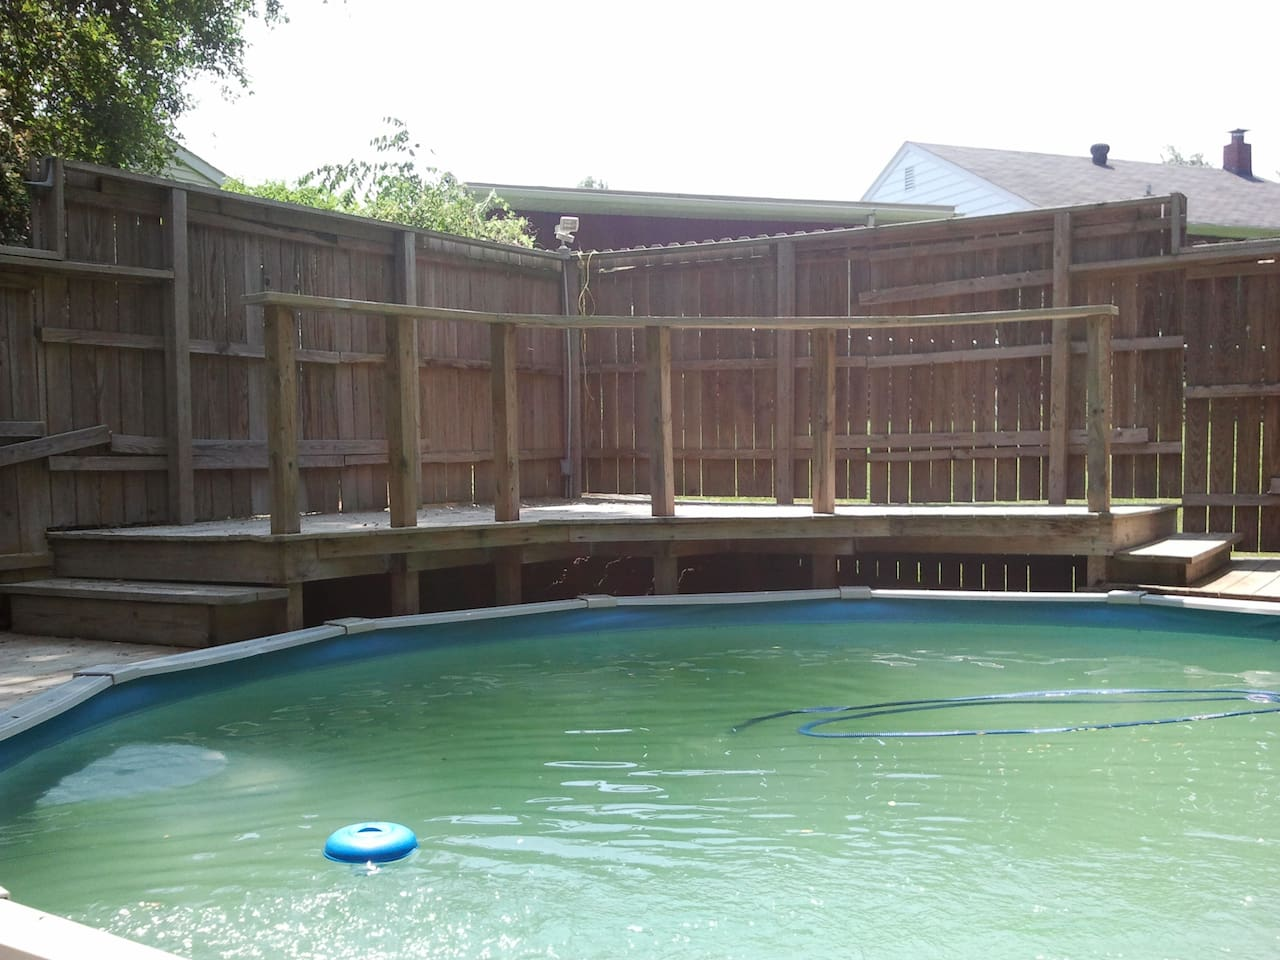 Pool and 4 level Deck with privacy fencing all around. Looks better when umbrellas and furniture is in place.